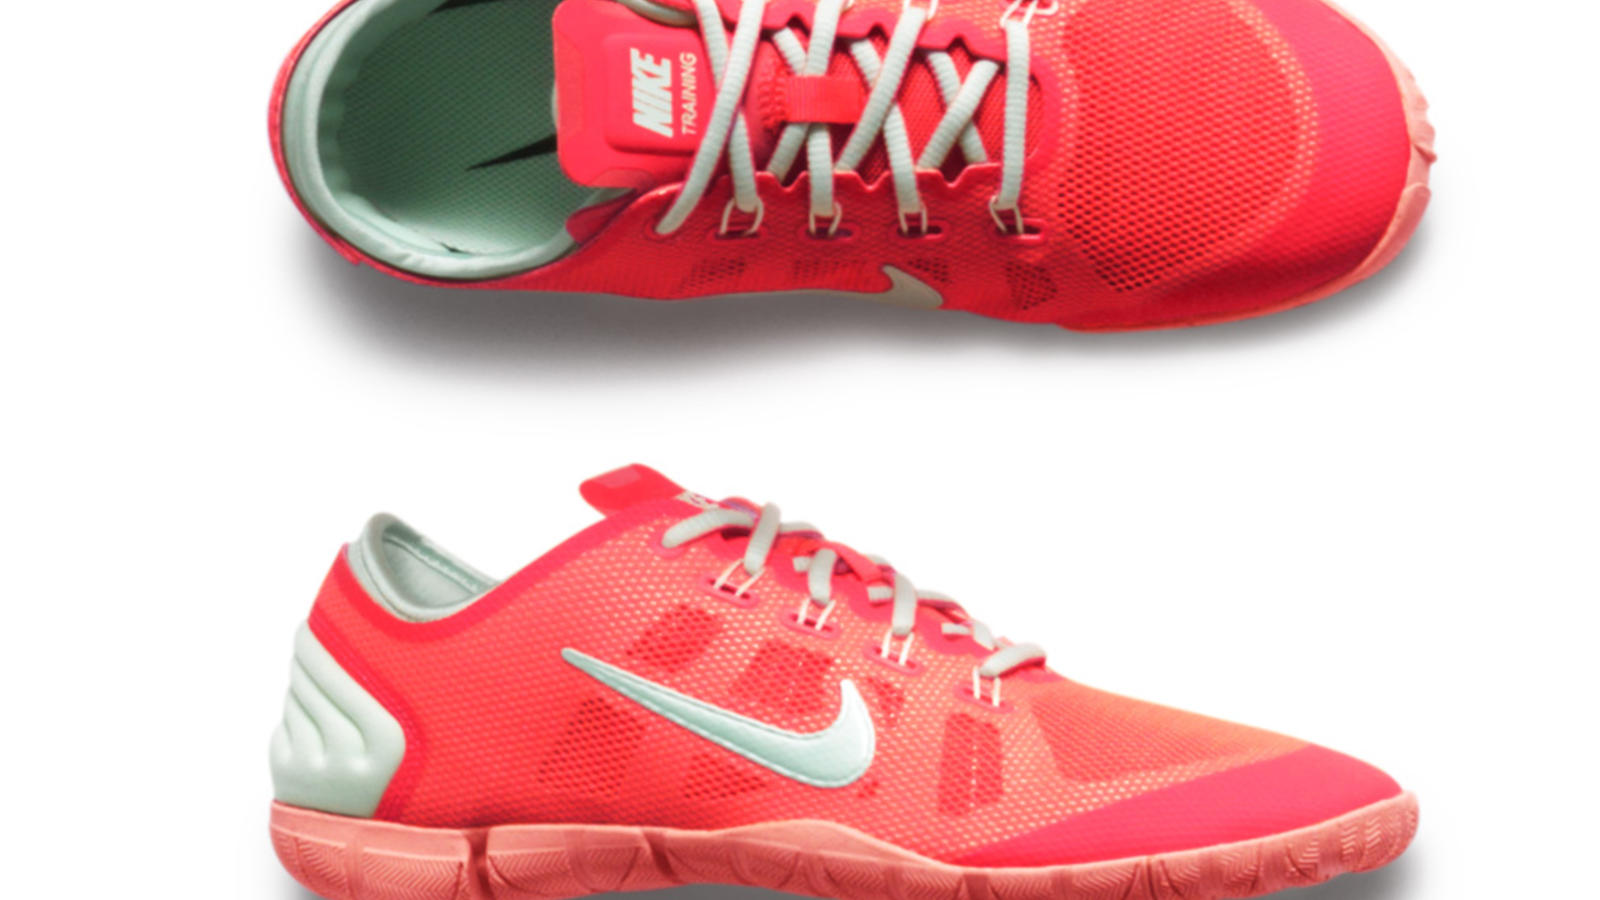 ... Nike Free Bionic. New women's shoe serves growing demand for High  Intensity Training workouts. Share Image